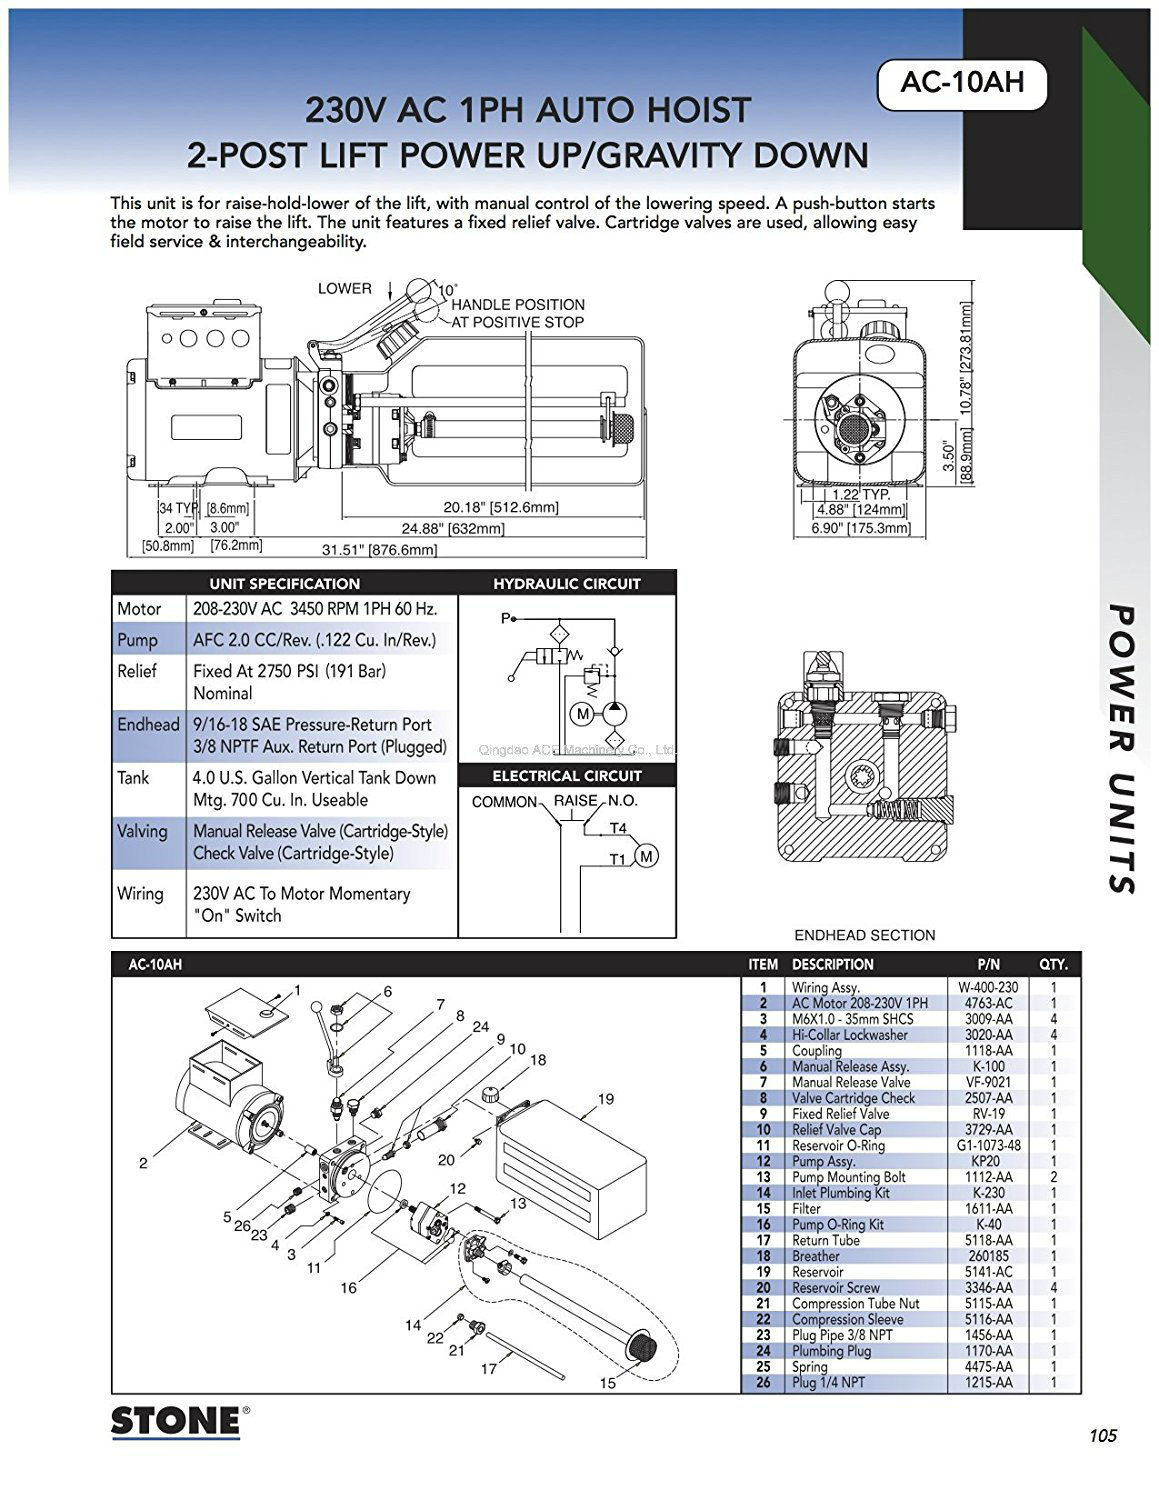 Car Lift Hydraulic Pump Diagram Content Resource Of Wiring Schematics Diagrams U2022 Rh Parntesis Co How Lifts Work System